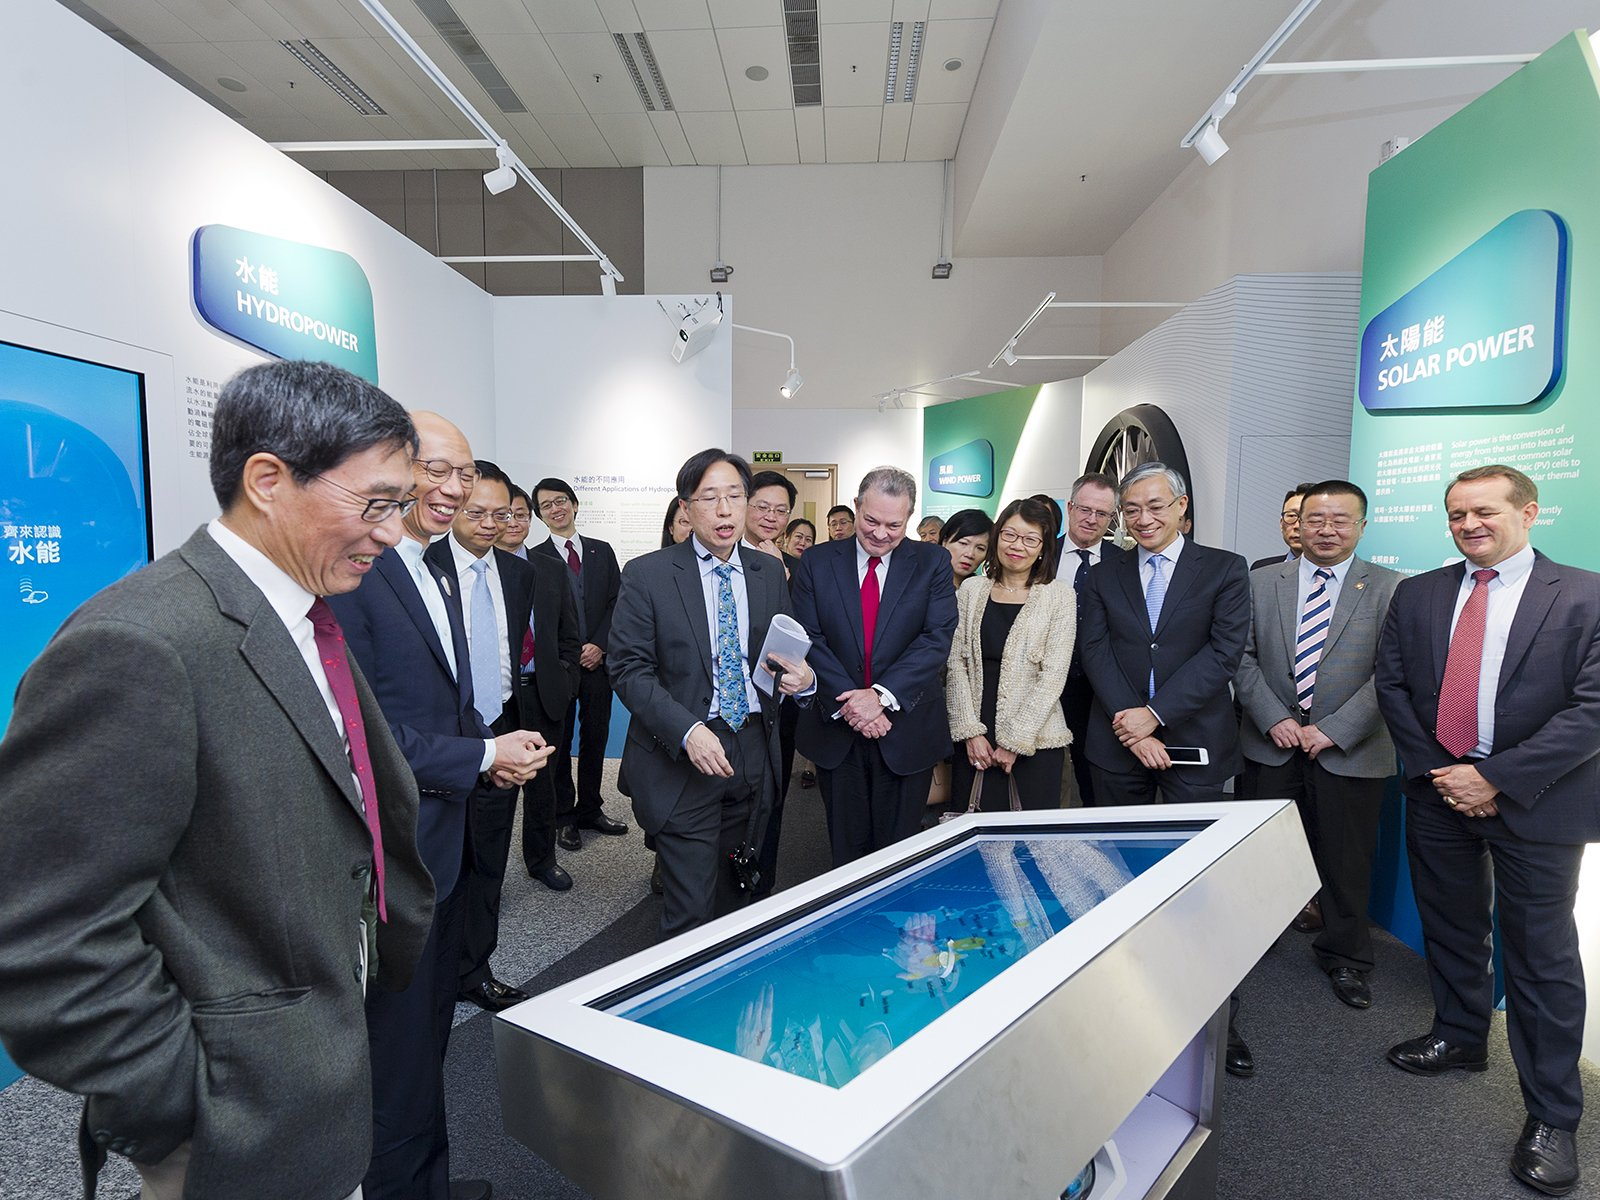 The guests visit the Low Carbon Energy Education Centre and are impressed by the interactive exhibits.